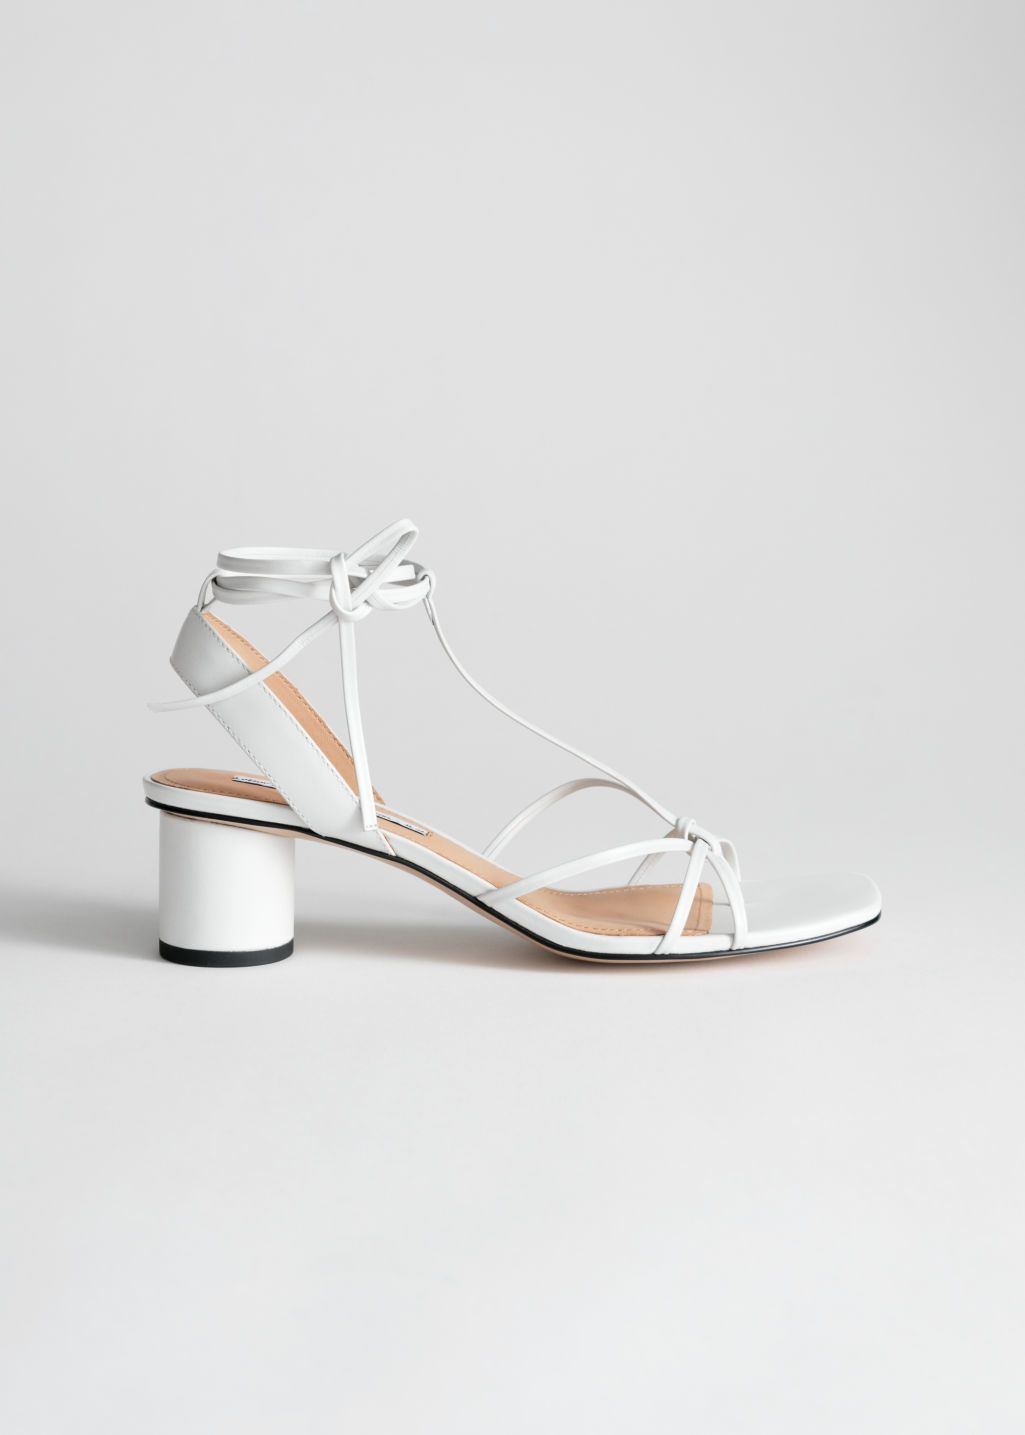 70dcdc196eb39 Square Toe Lace Up Heeled Sandals - White - Heeled sandals - & Other Stories